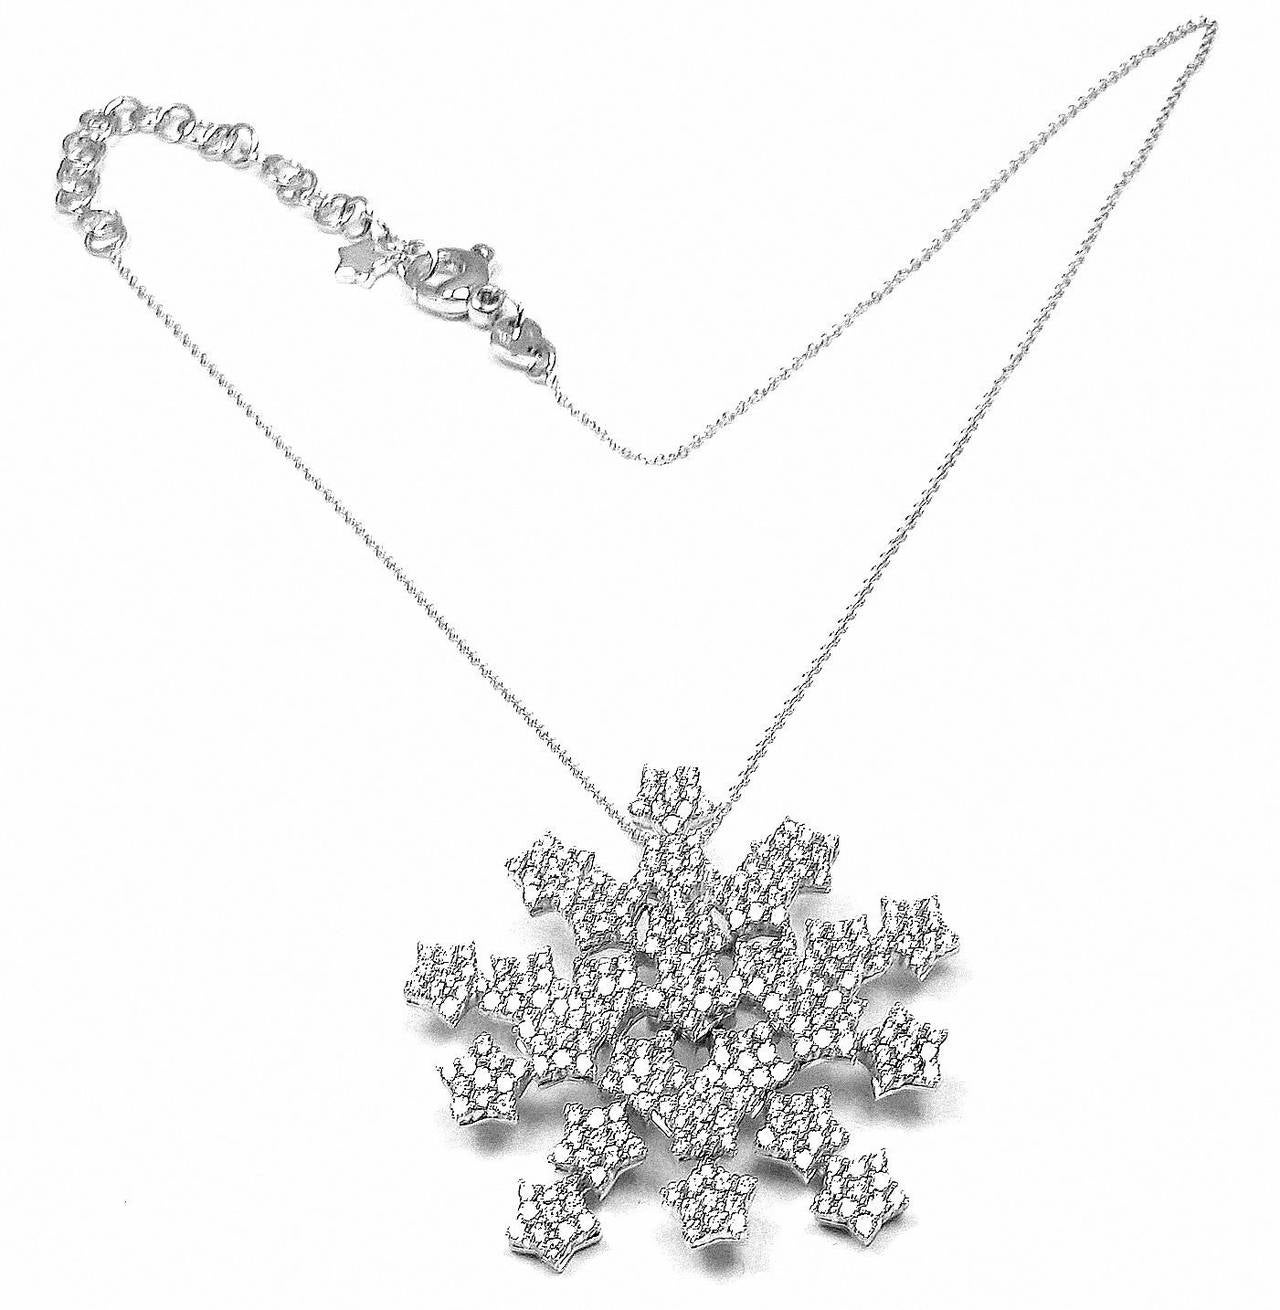 18k White Gold Snow Flake 4.35ct Diamond Necklace by Pasquale Bruni.